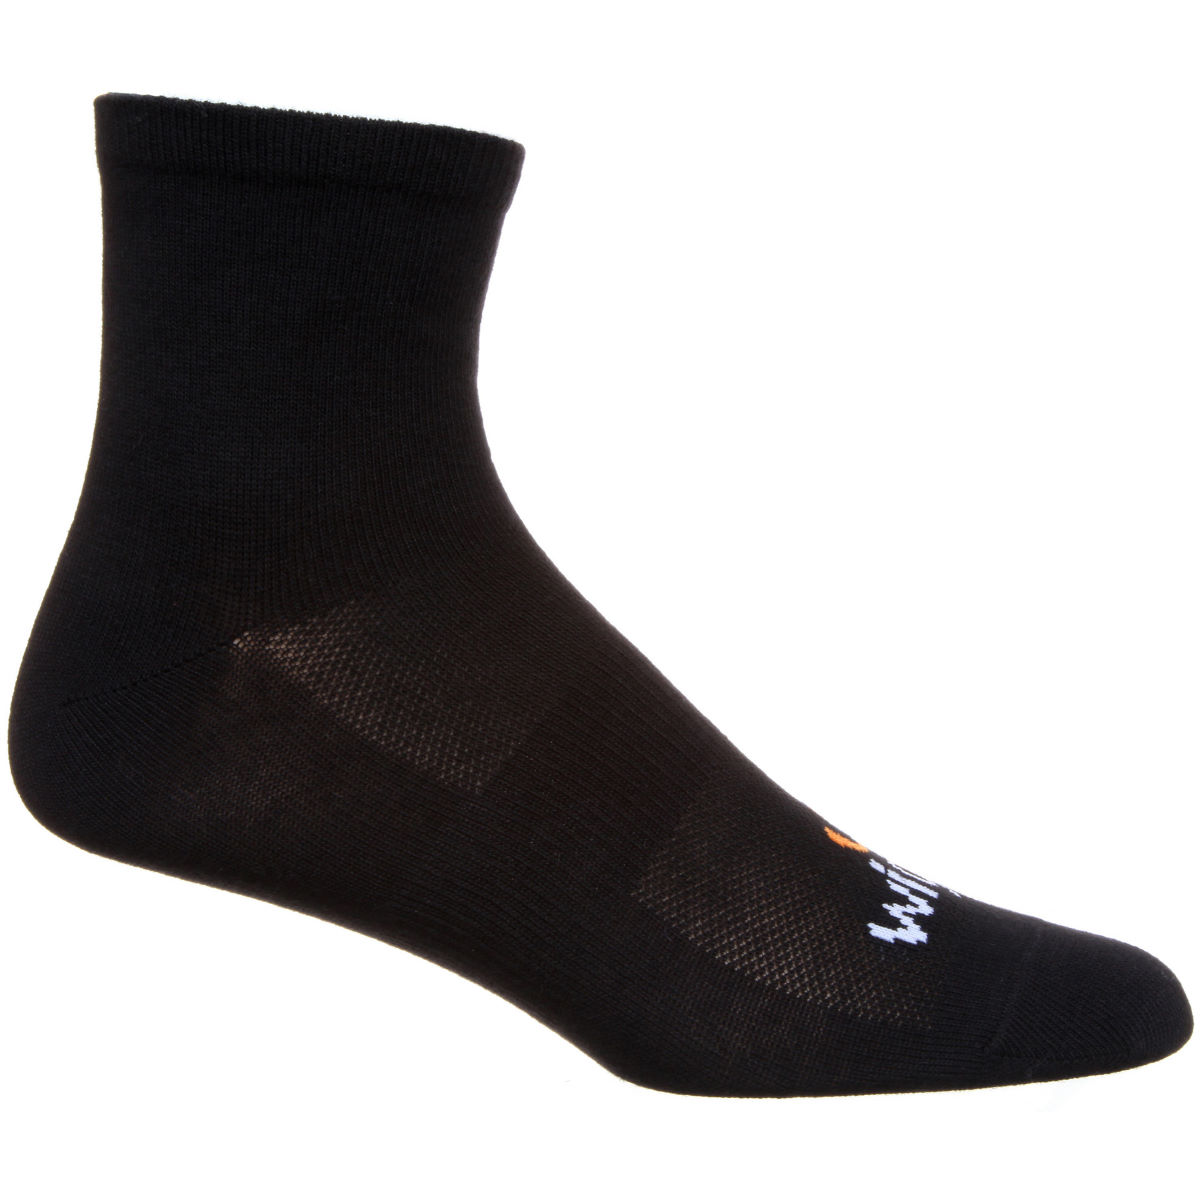 Wiggle Essentials Low Cuff Cycle Socks